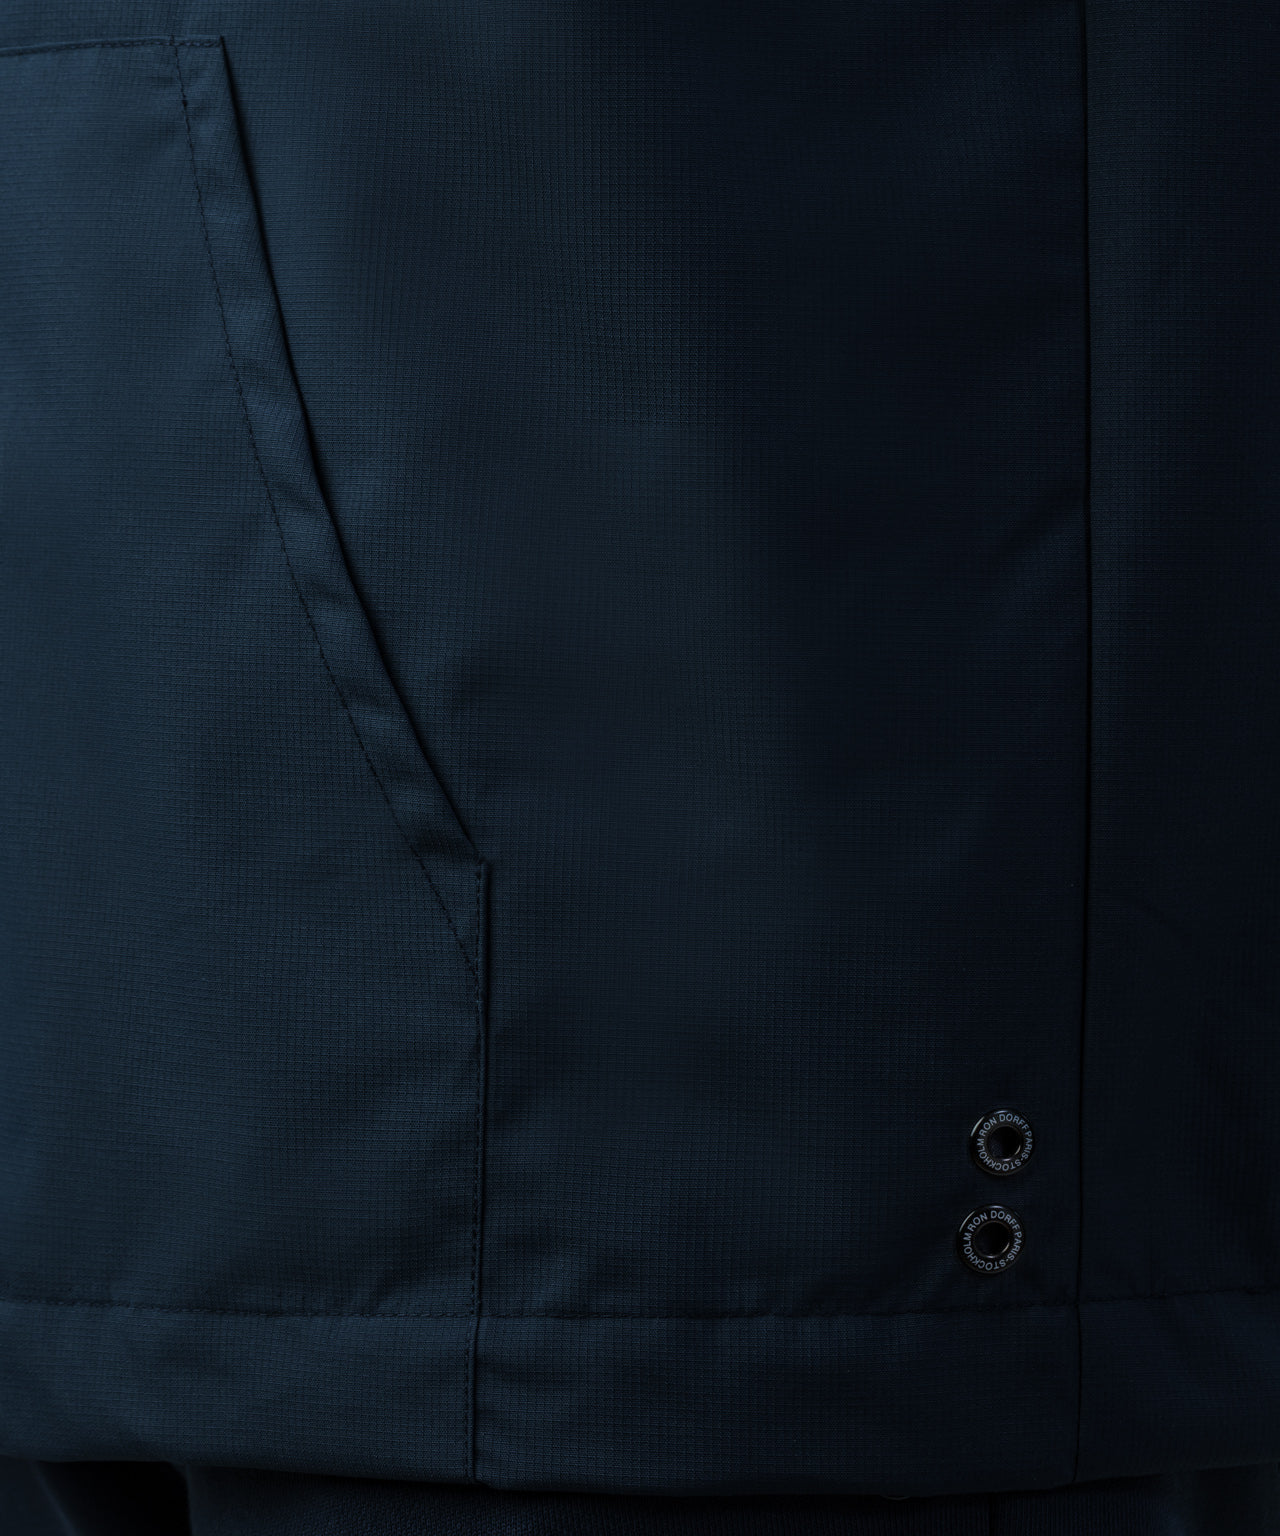 Panelled Zipped Windbreaker - navy